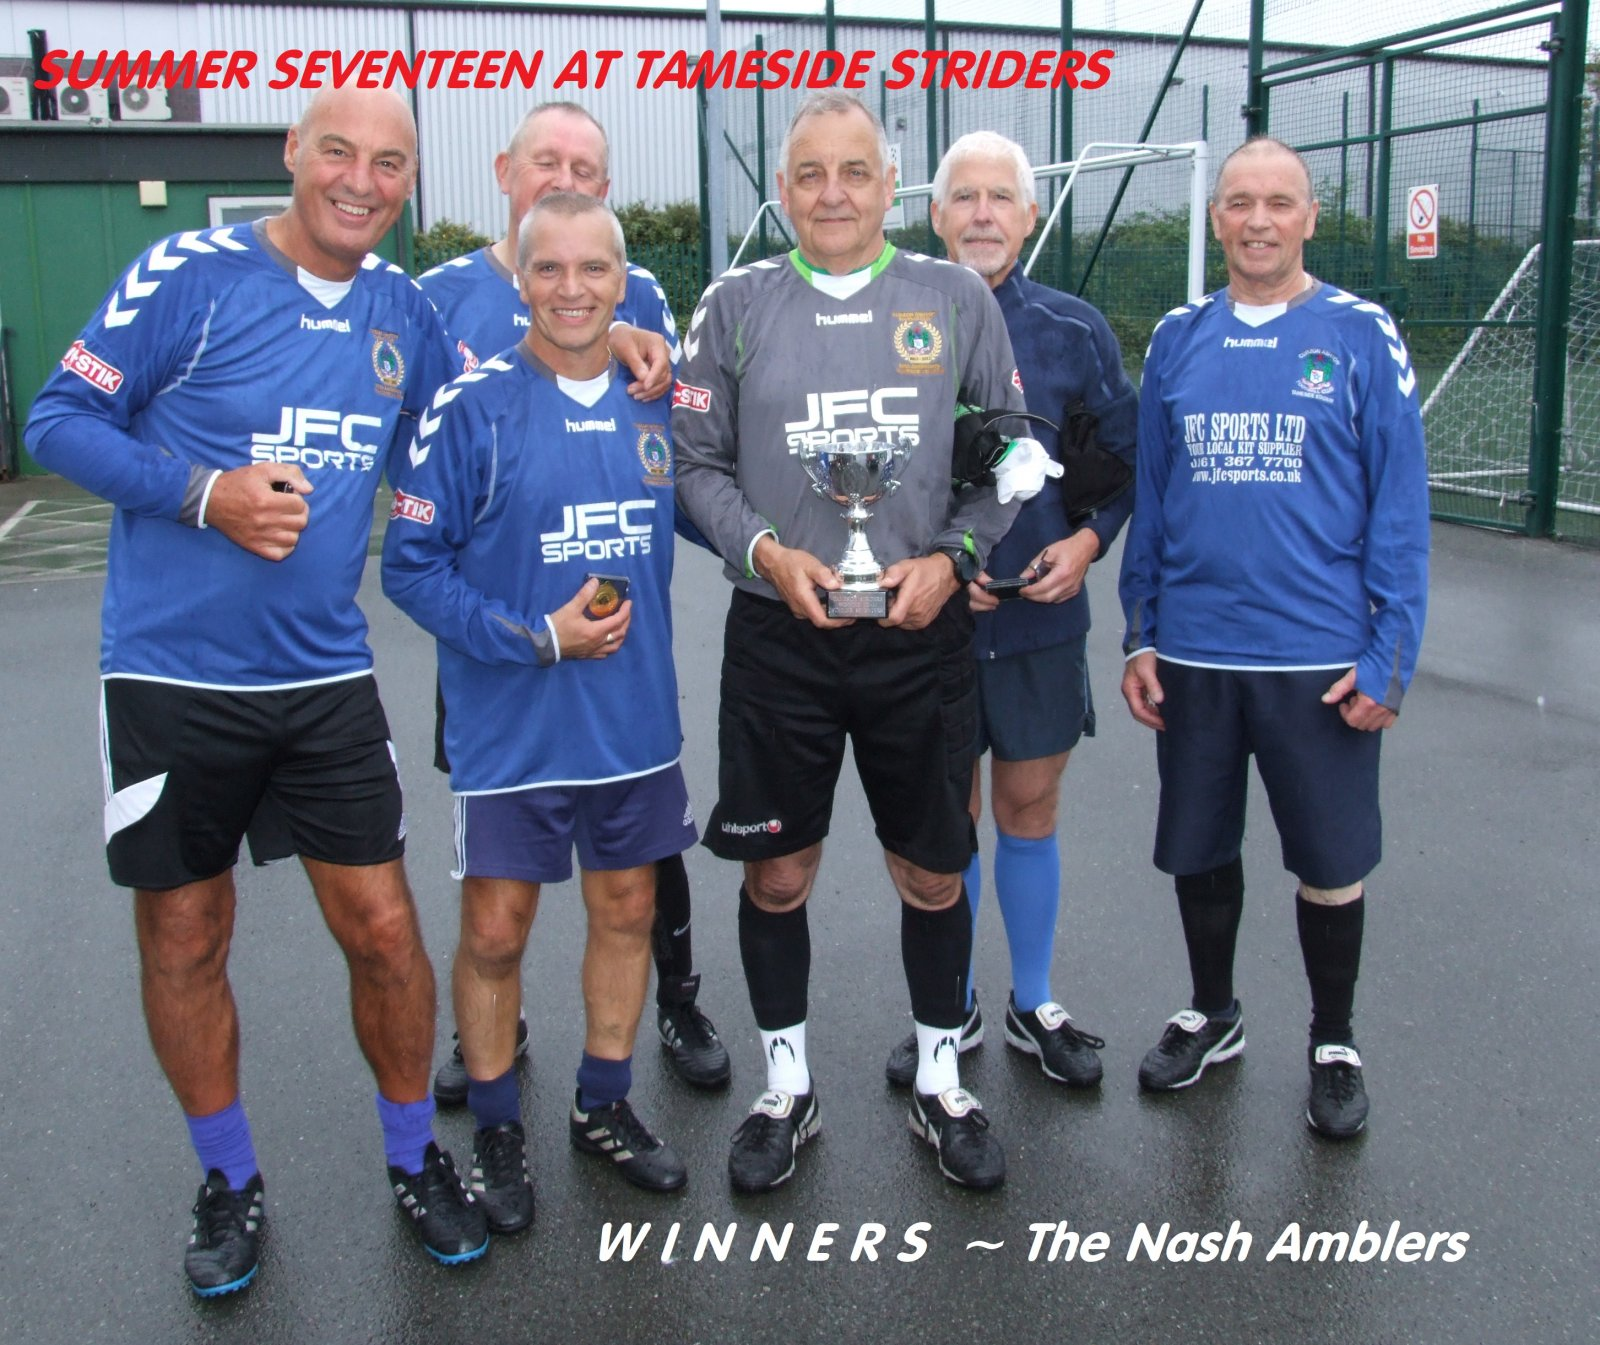 The Nash Amblers crowned at King Street